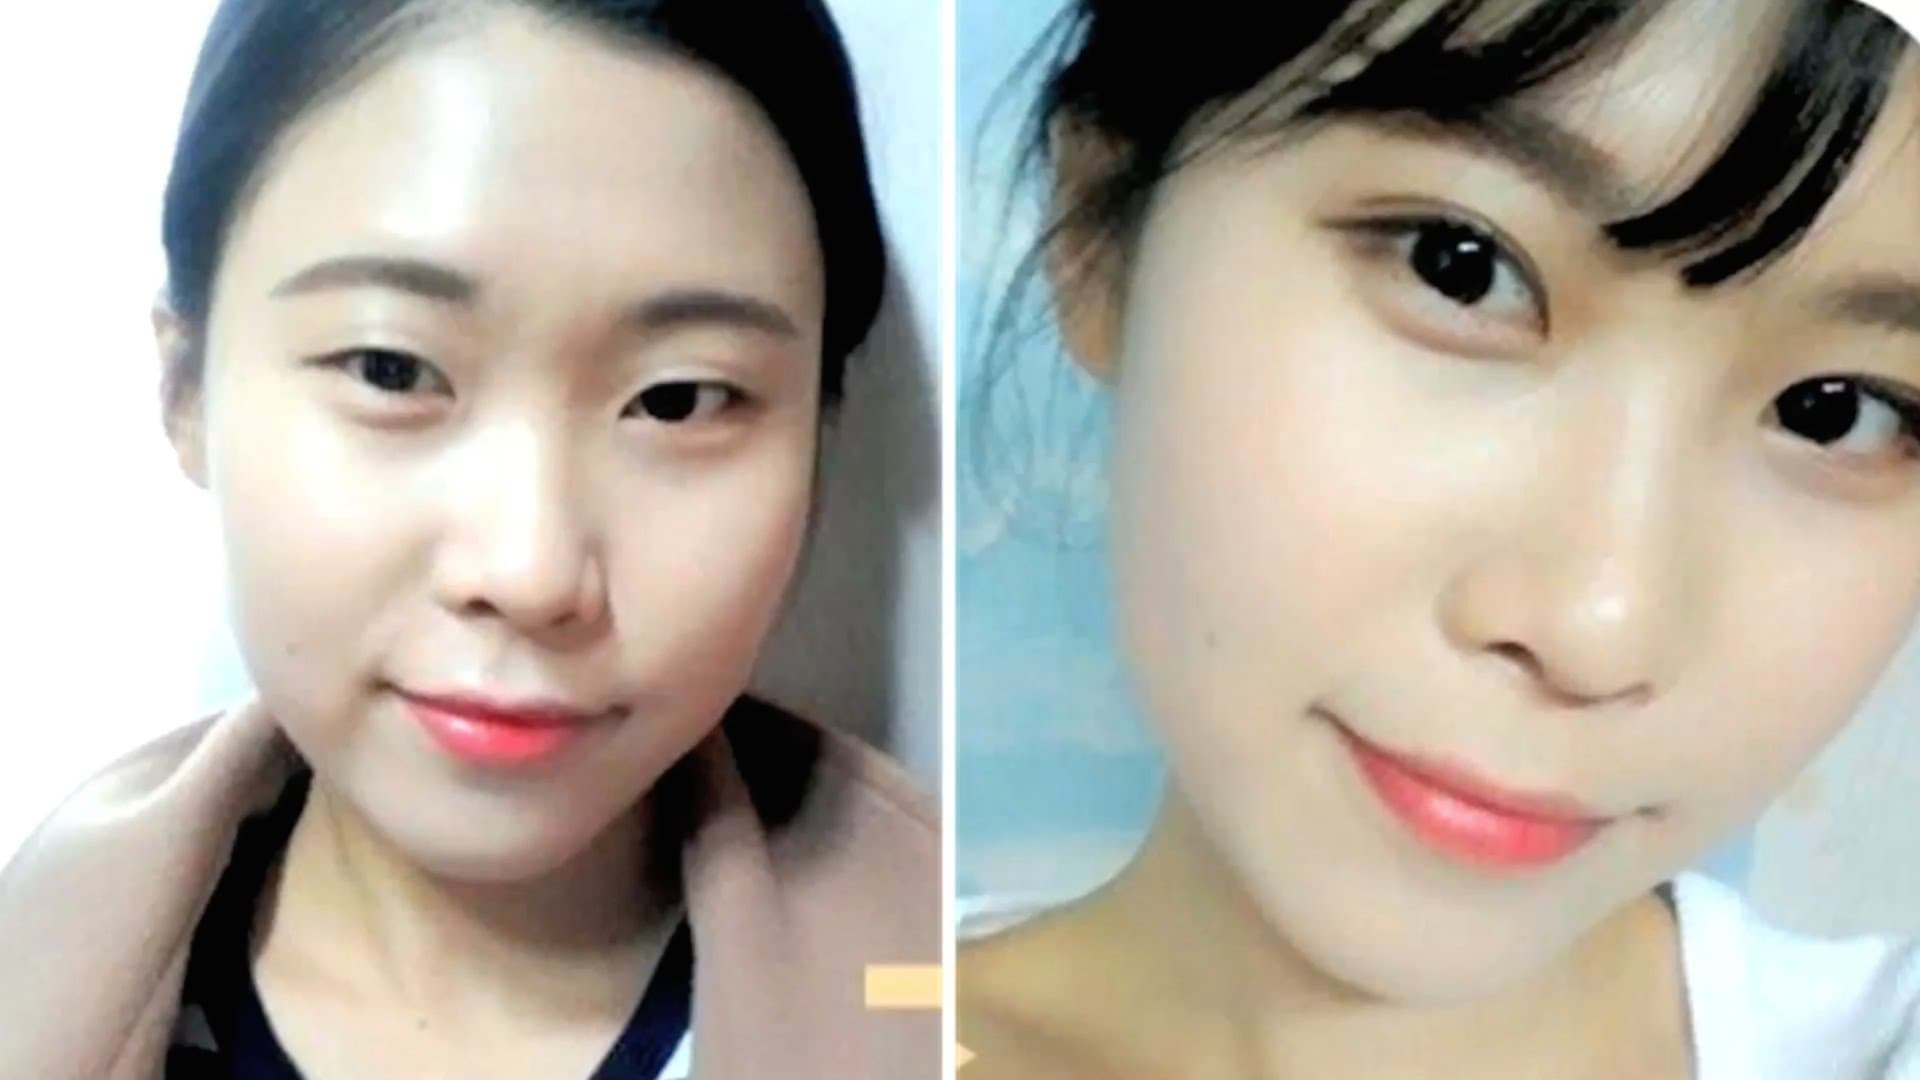 Korean Idol Before And After Plastic Surgery photo - 1